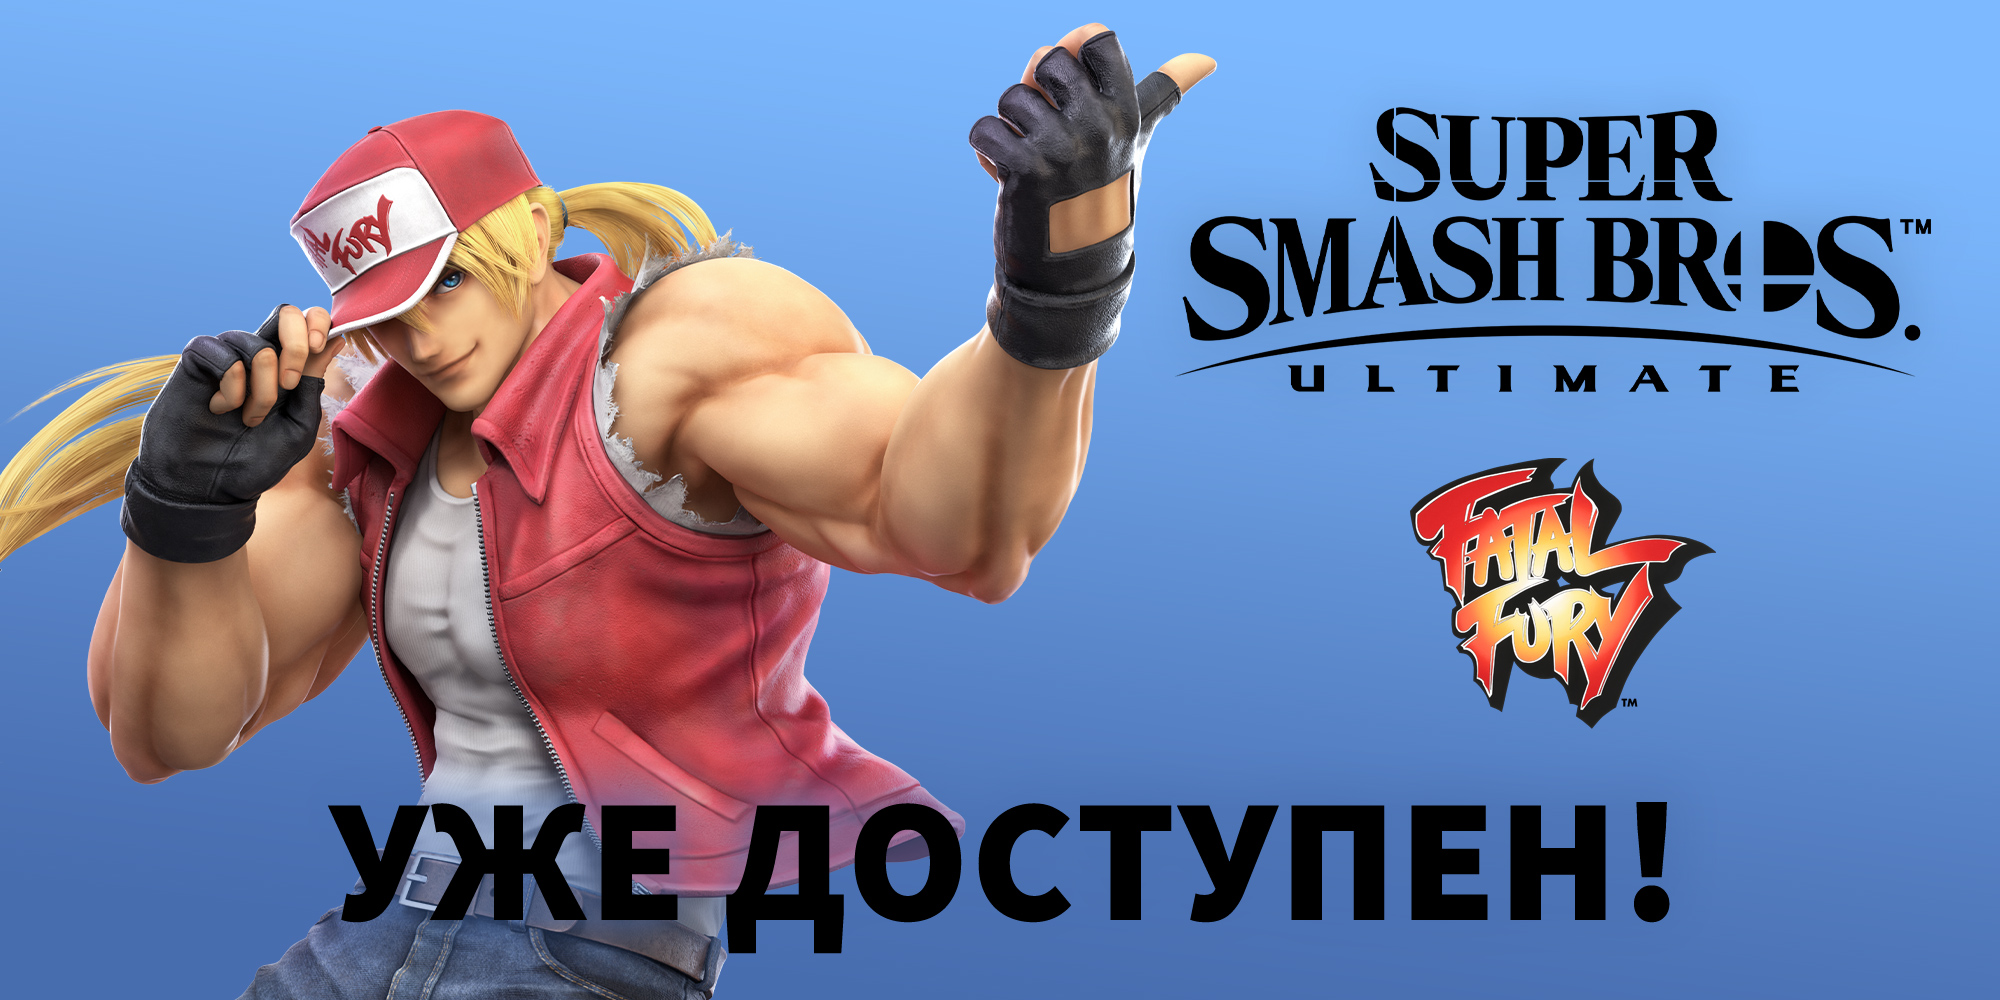 Терри Богард из FATAL FURY появится в Super Smash Bros. Ultimate… сегодня!